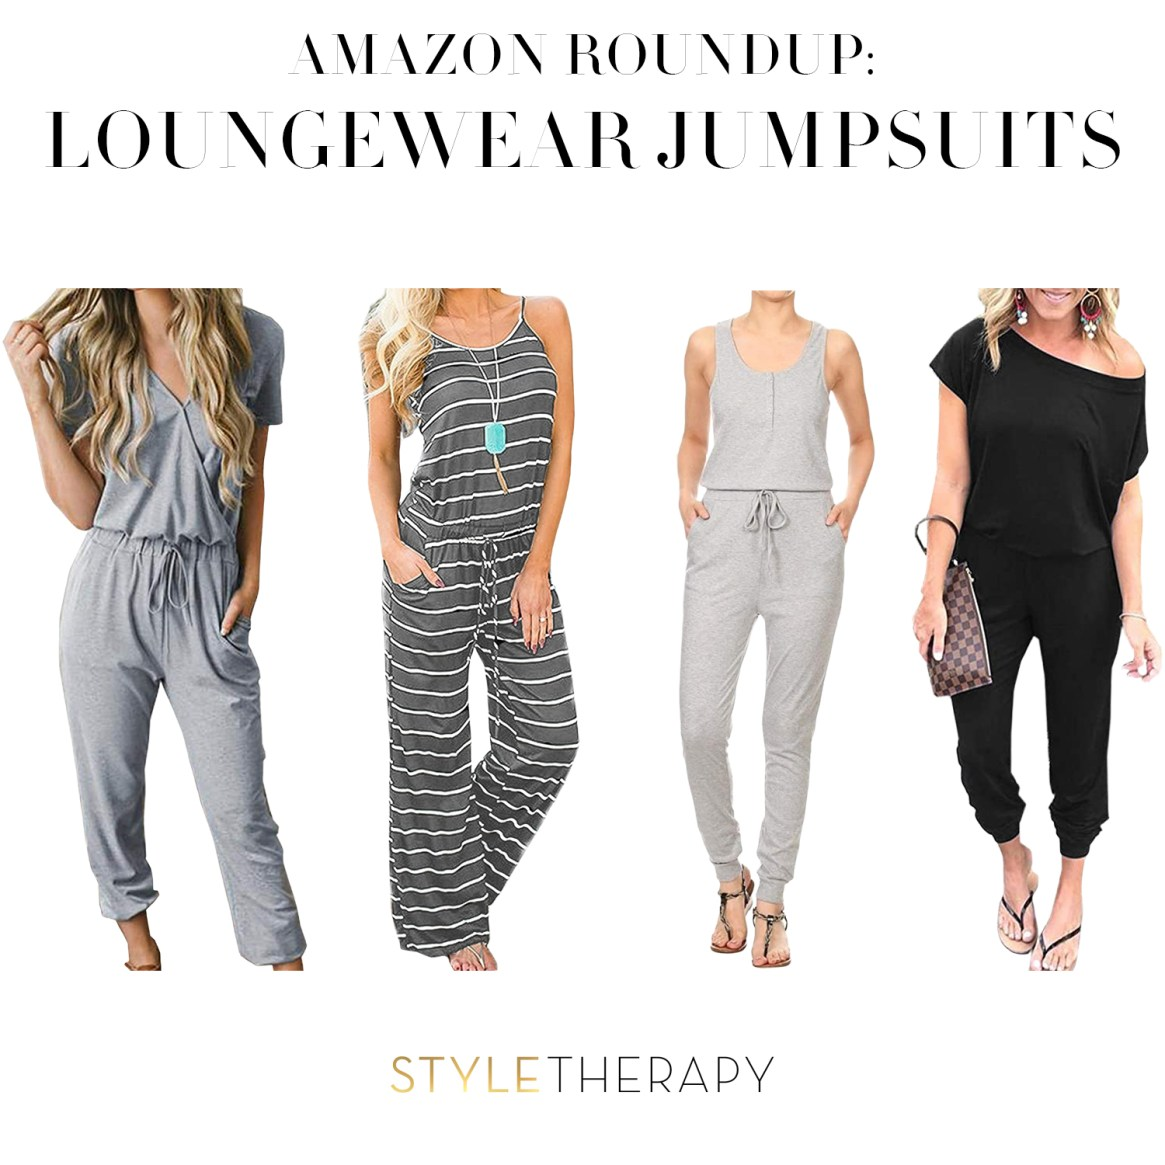 Amazon Roundup Loungewear Jumpsuits Instagram